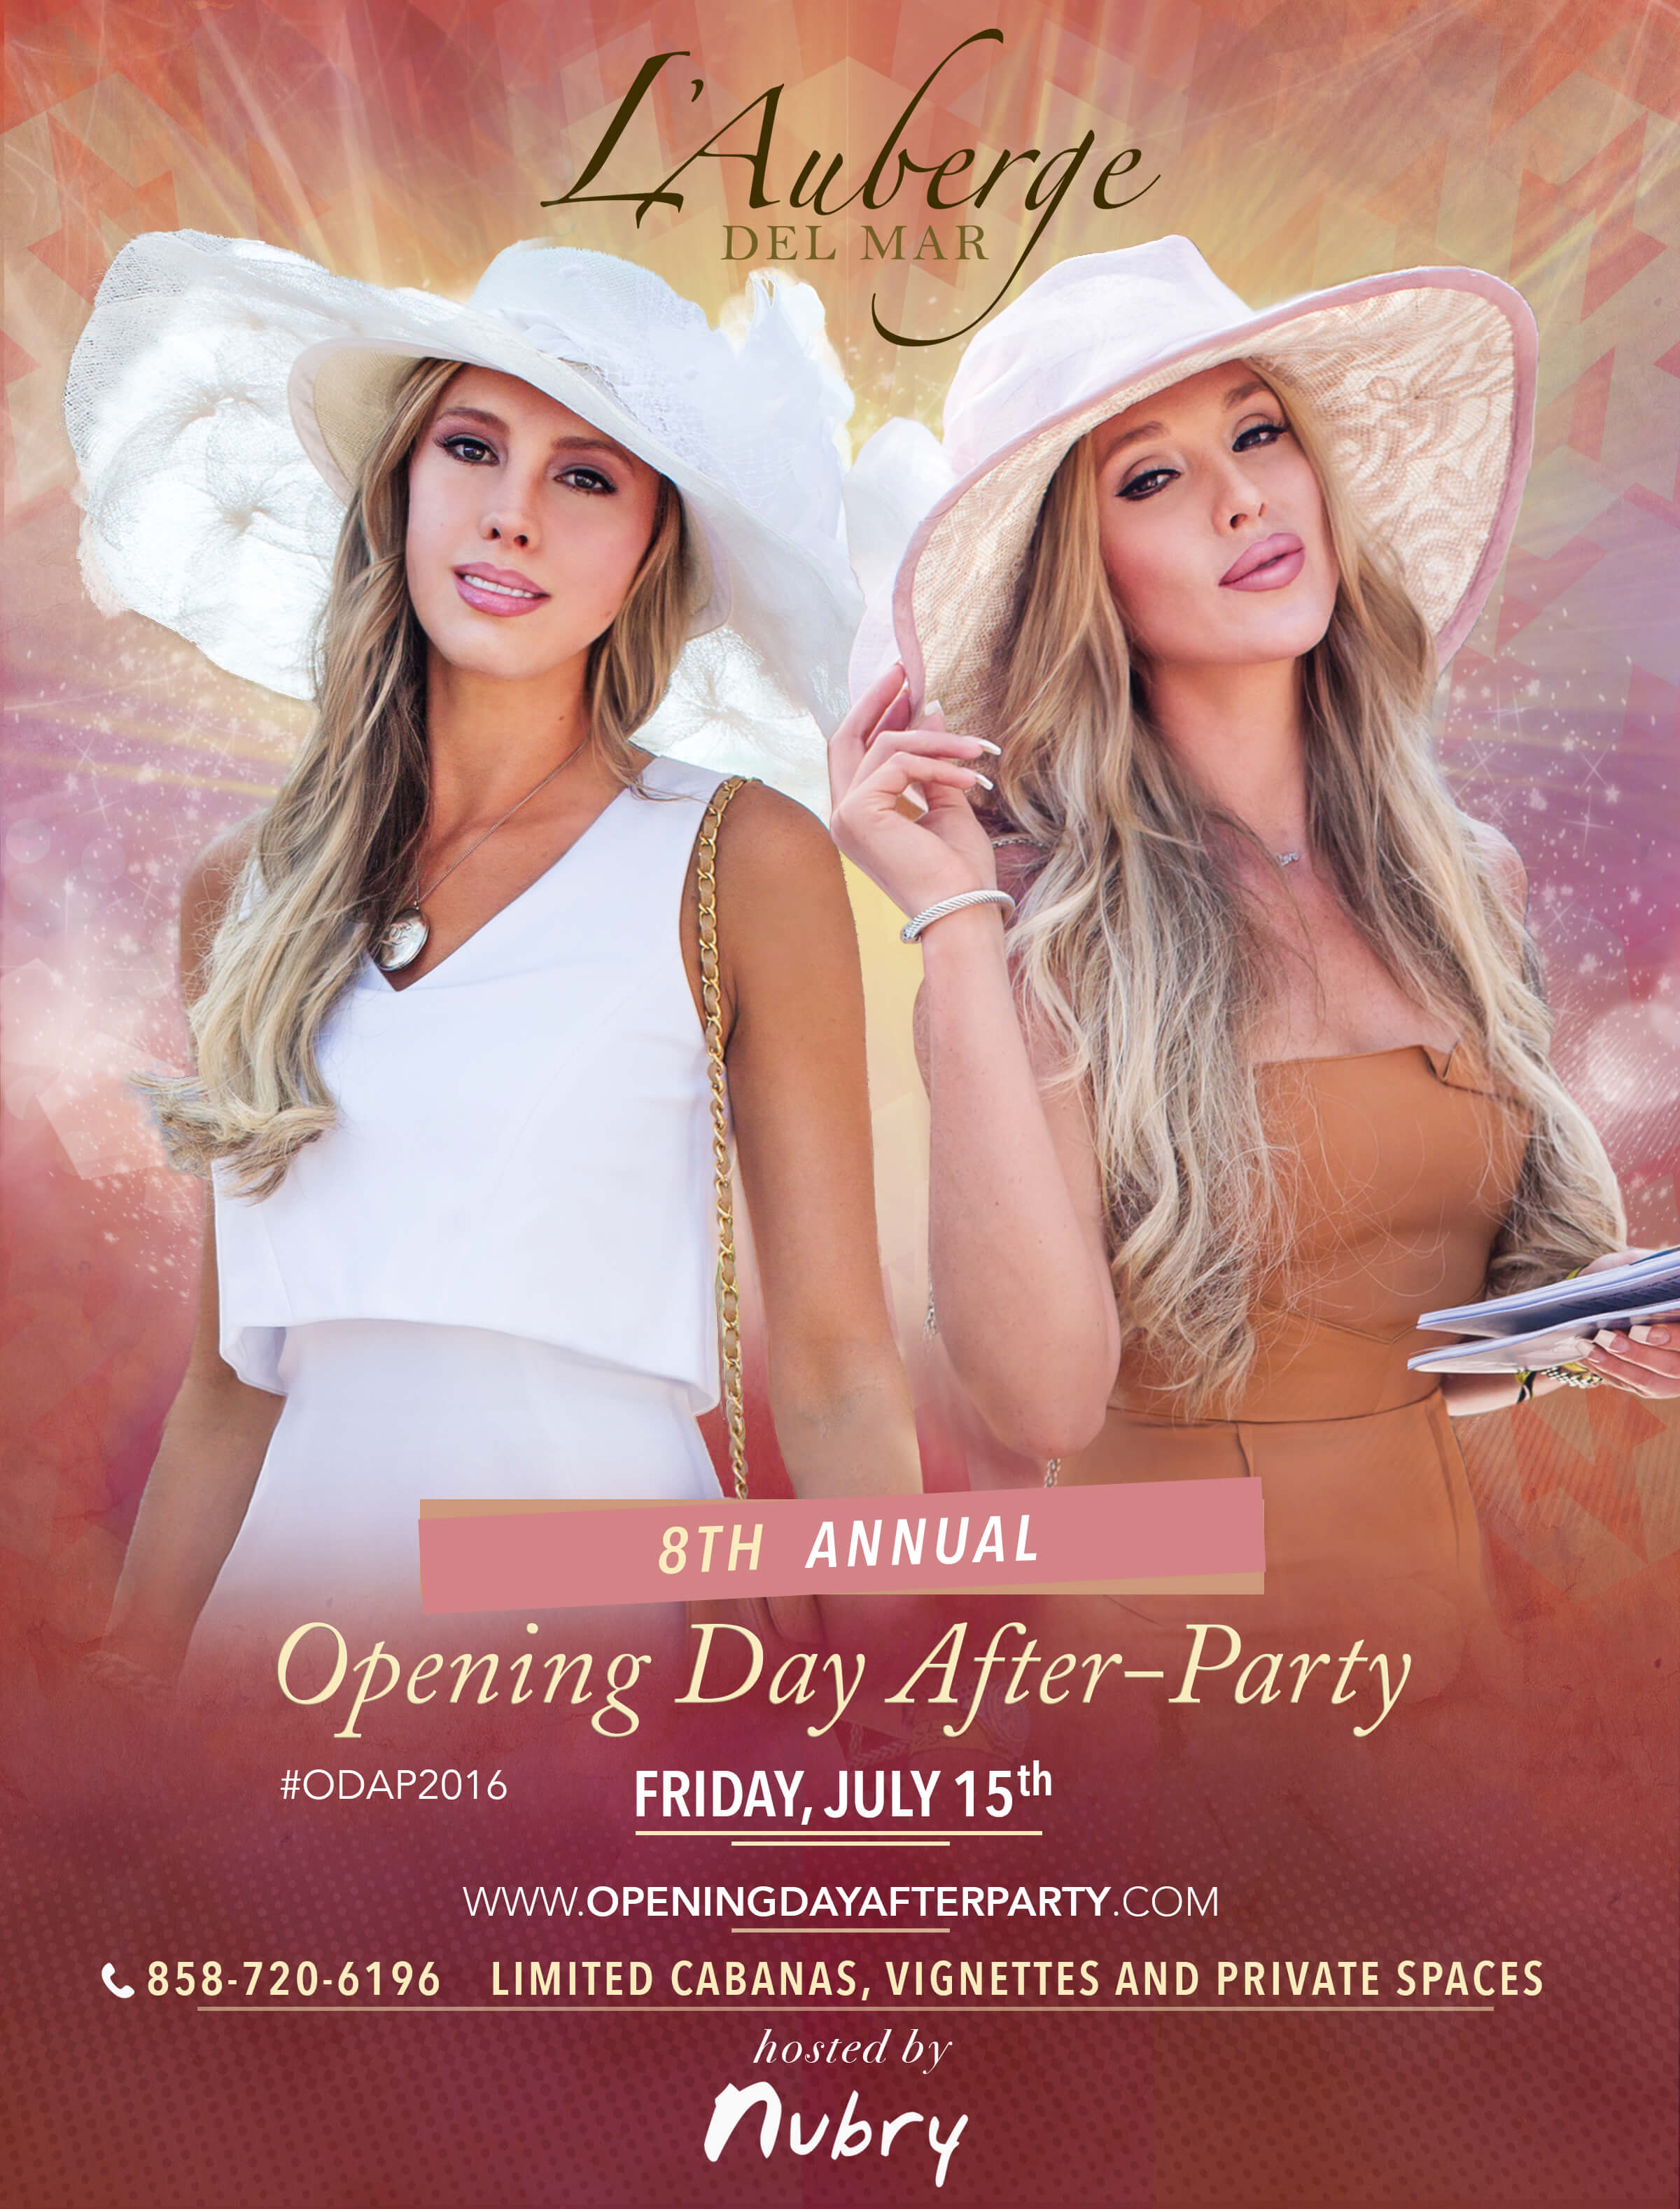 lauberge del mar opening day after-party 2016 flyer